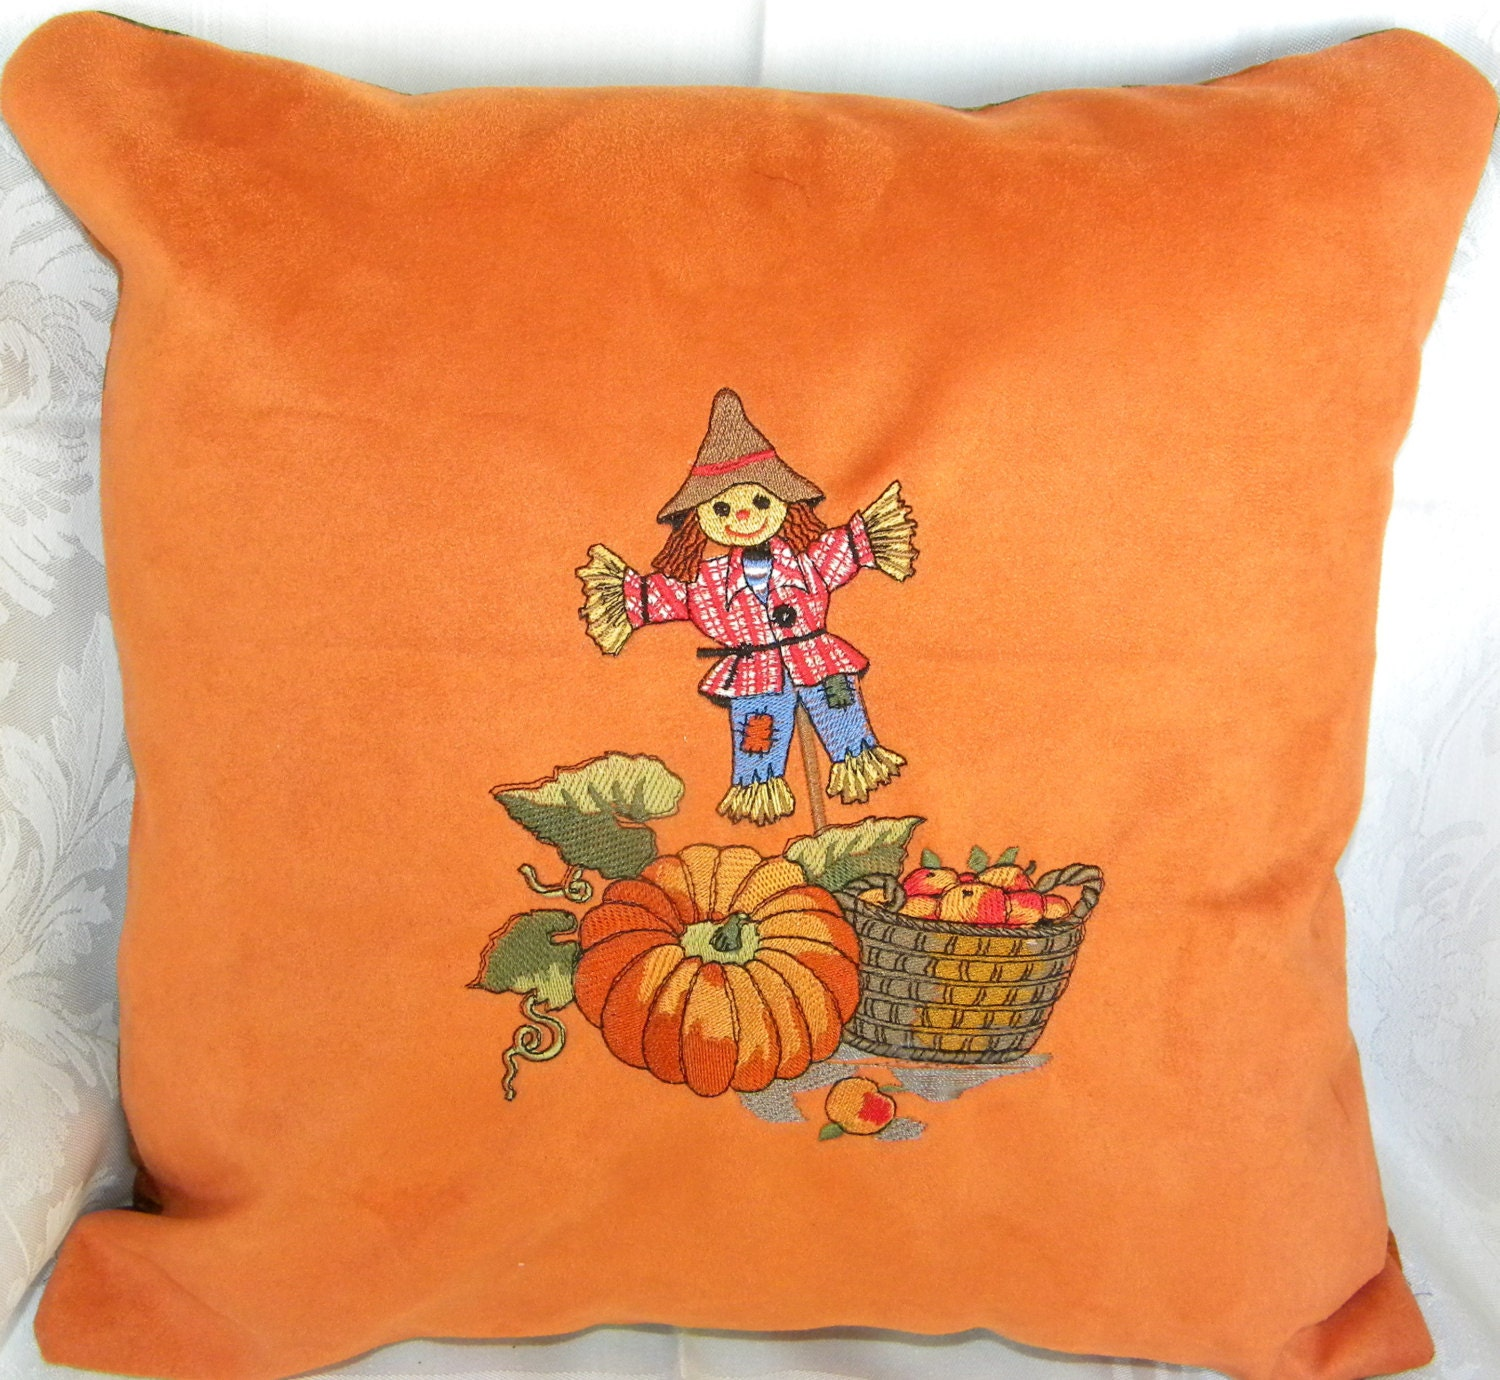 Decorative Pillows For Fall : Fall Decorative Pillow Embroidered Scarecrow by SewGoodbyDolores